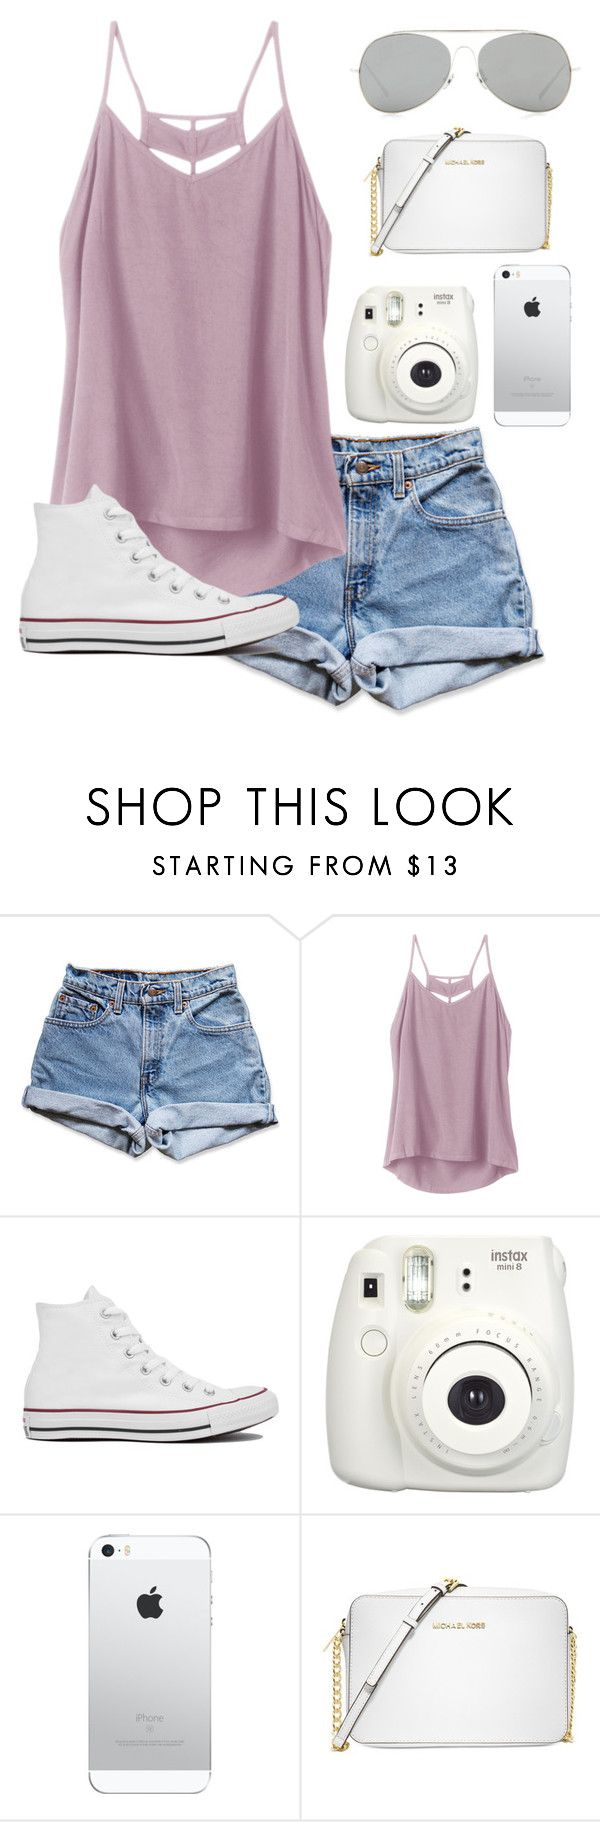 """""""last day with braces"""" by moonhauntedmyocean ❤ liked on Polyvore featuring Levi's, RVCA, Converse, Michael Kors and Acne Studios"""